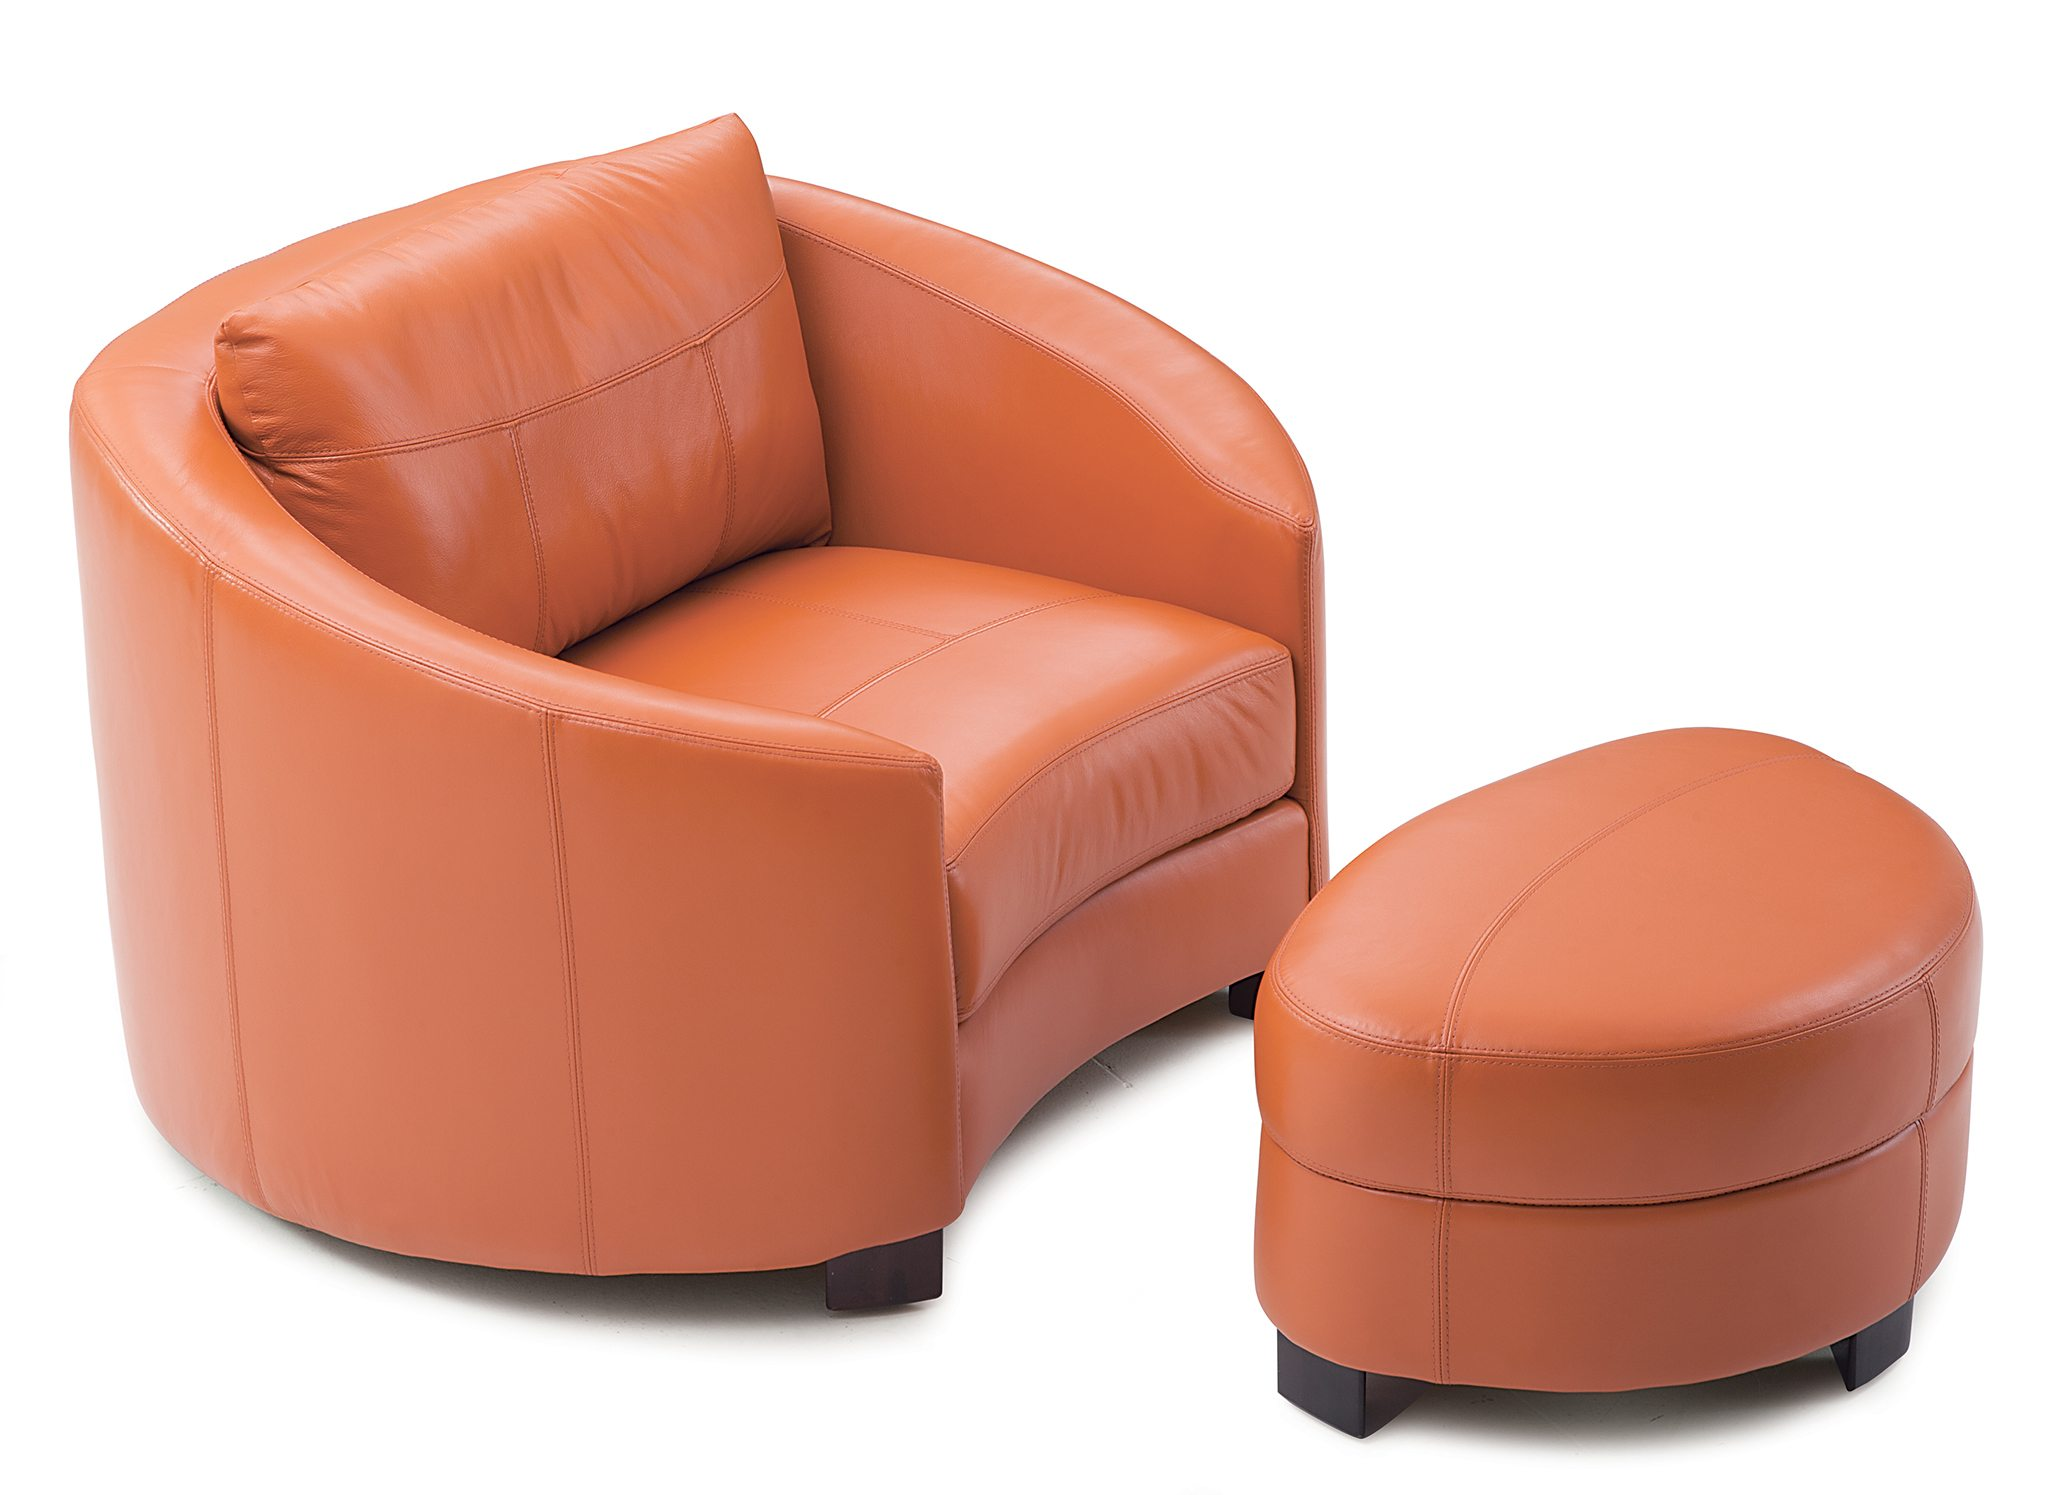 Snuggle Chairs Cuddle Chair And Ottoman Ladiff